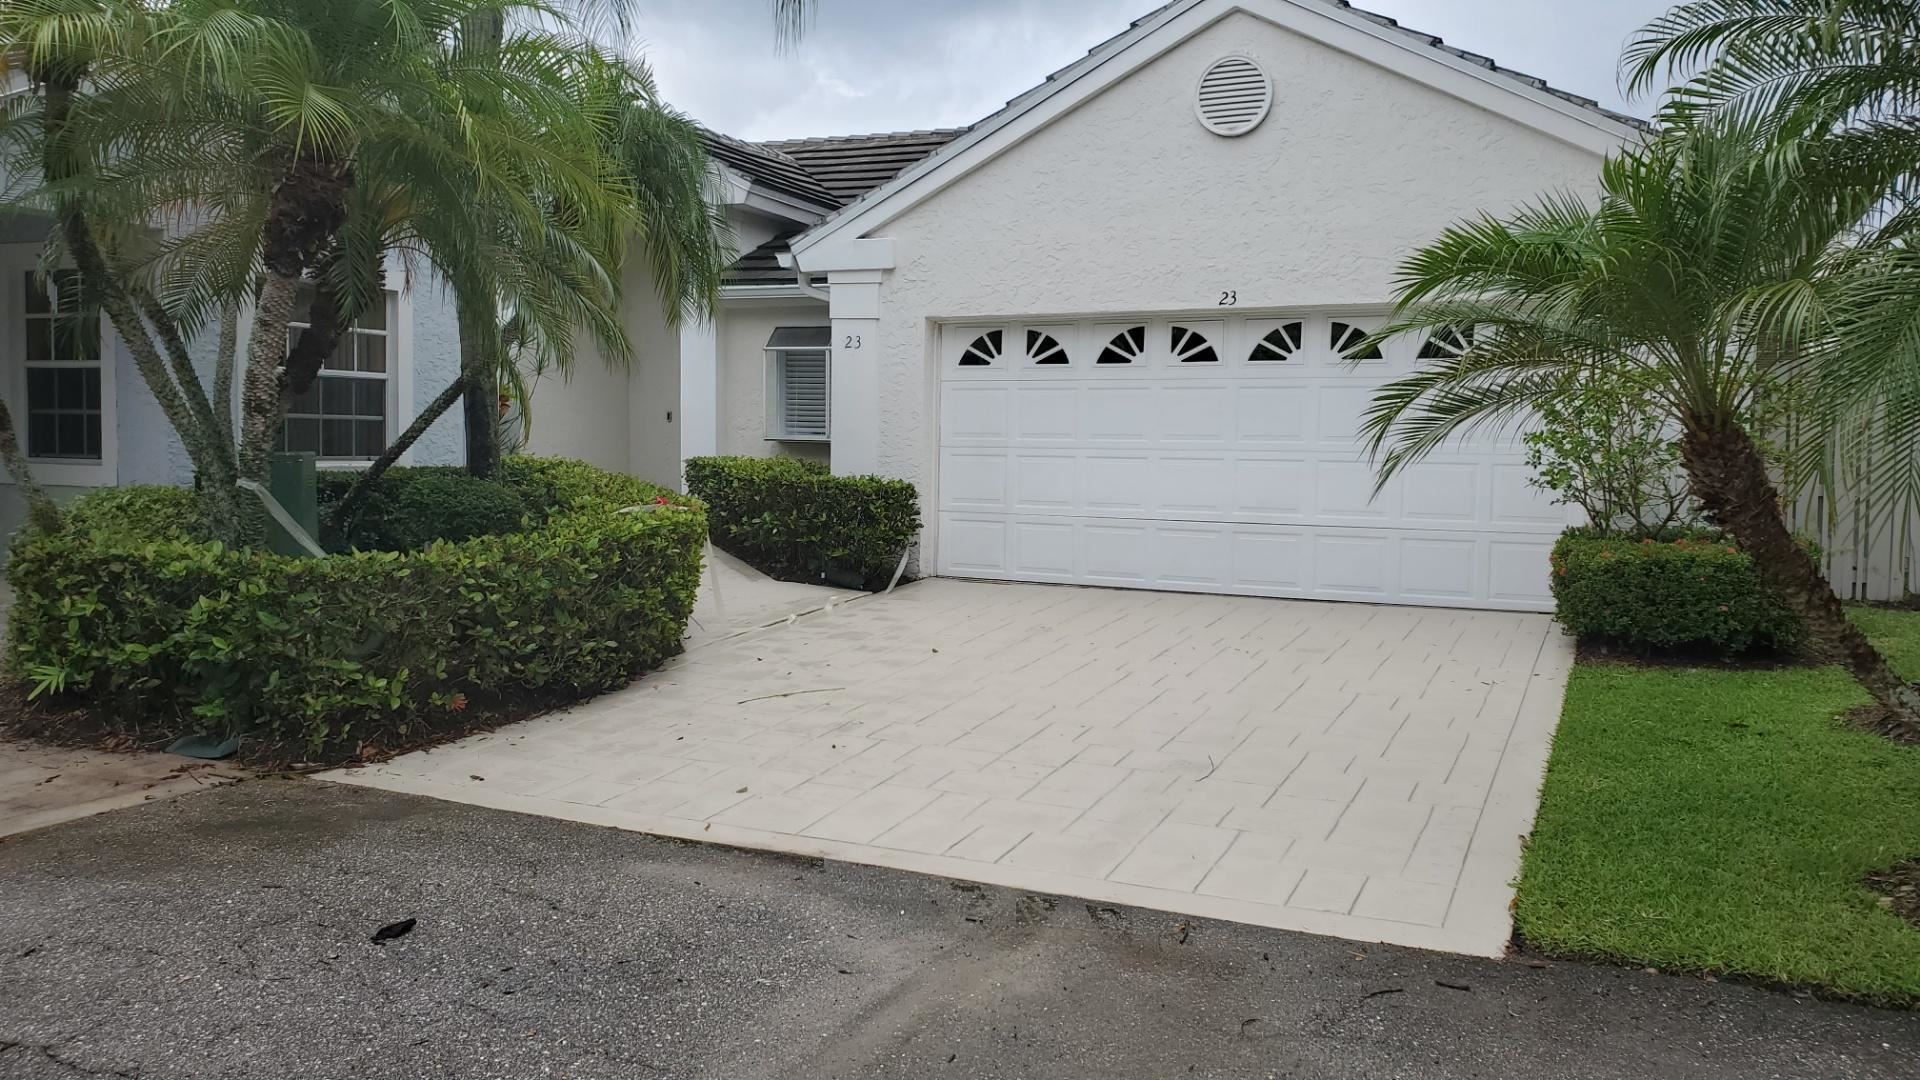 Photo of 23 Governors Court, Palm Beach Gardens, FL 33418 (MLS # RX-10627532)